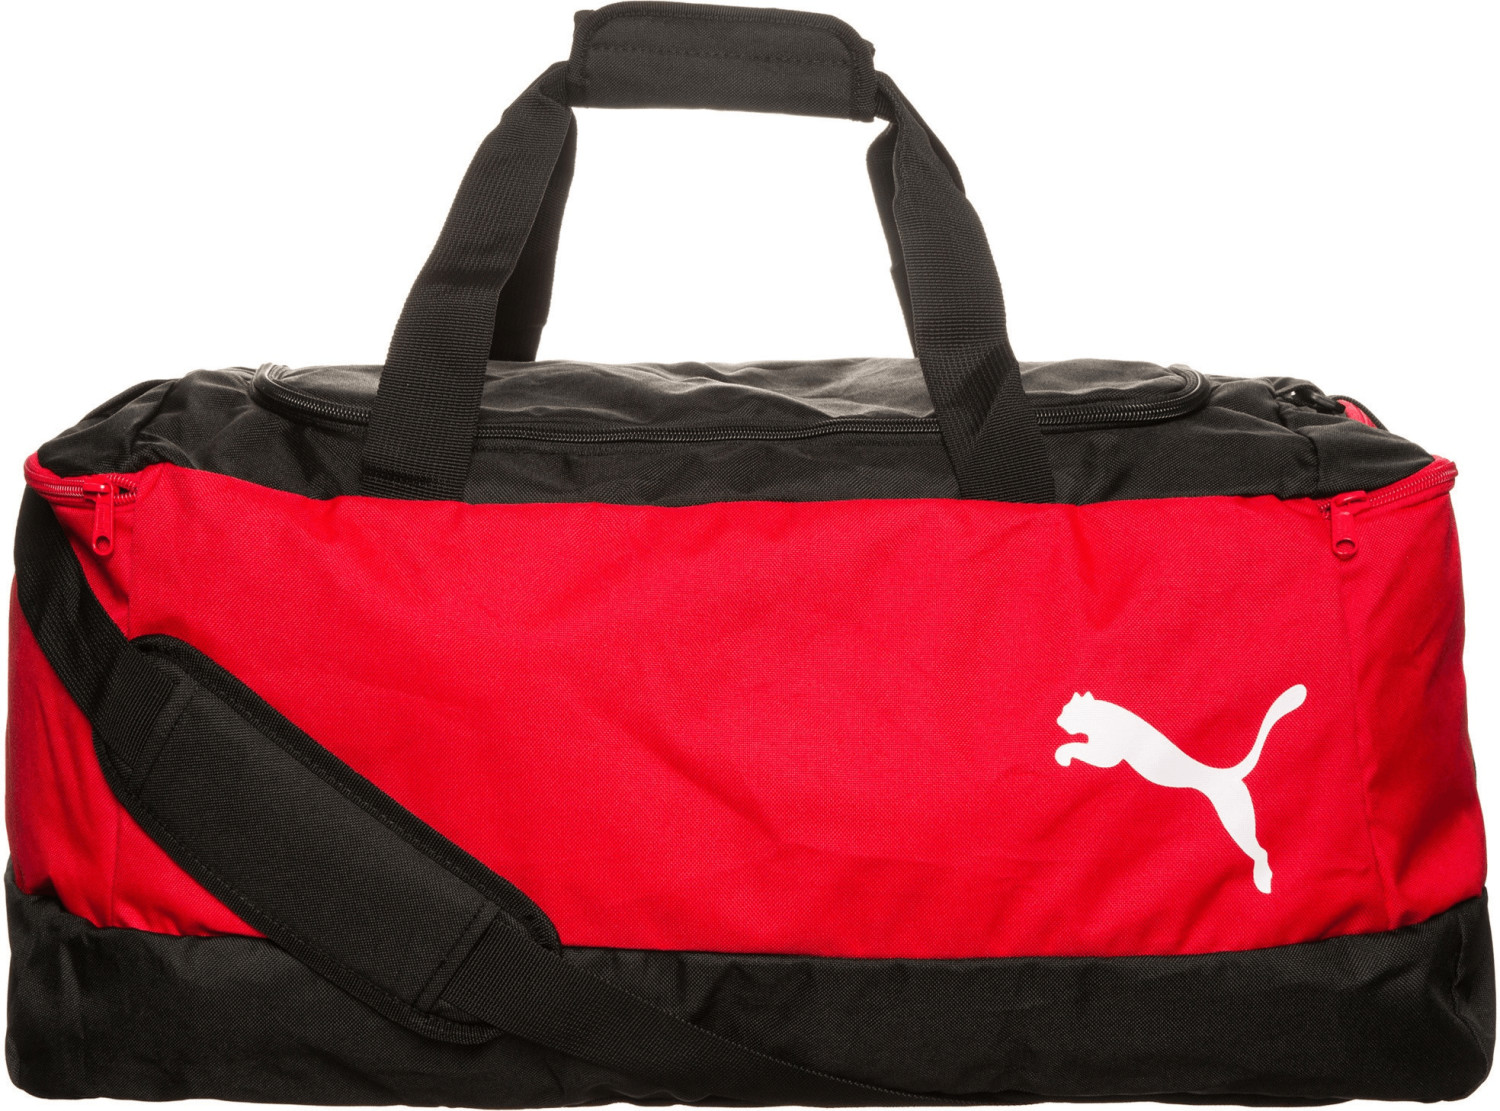 Puma Pro Training II Medium Bag puma red/puma black (74892)